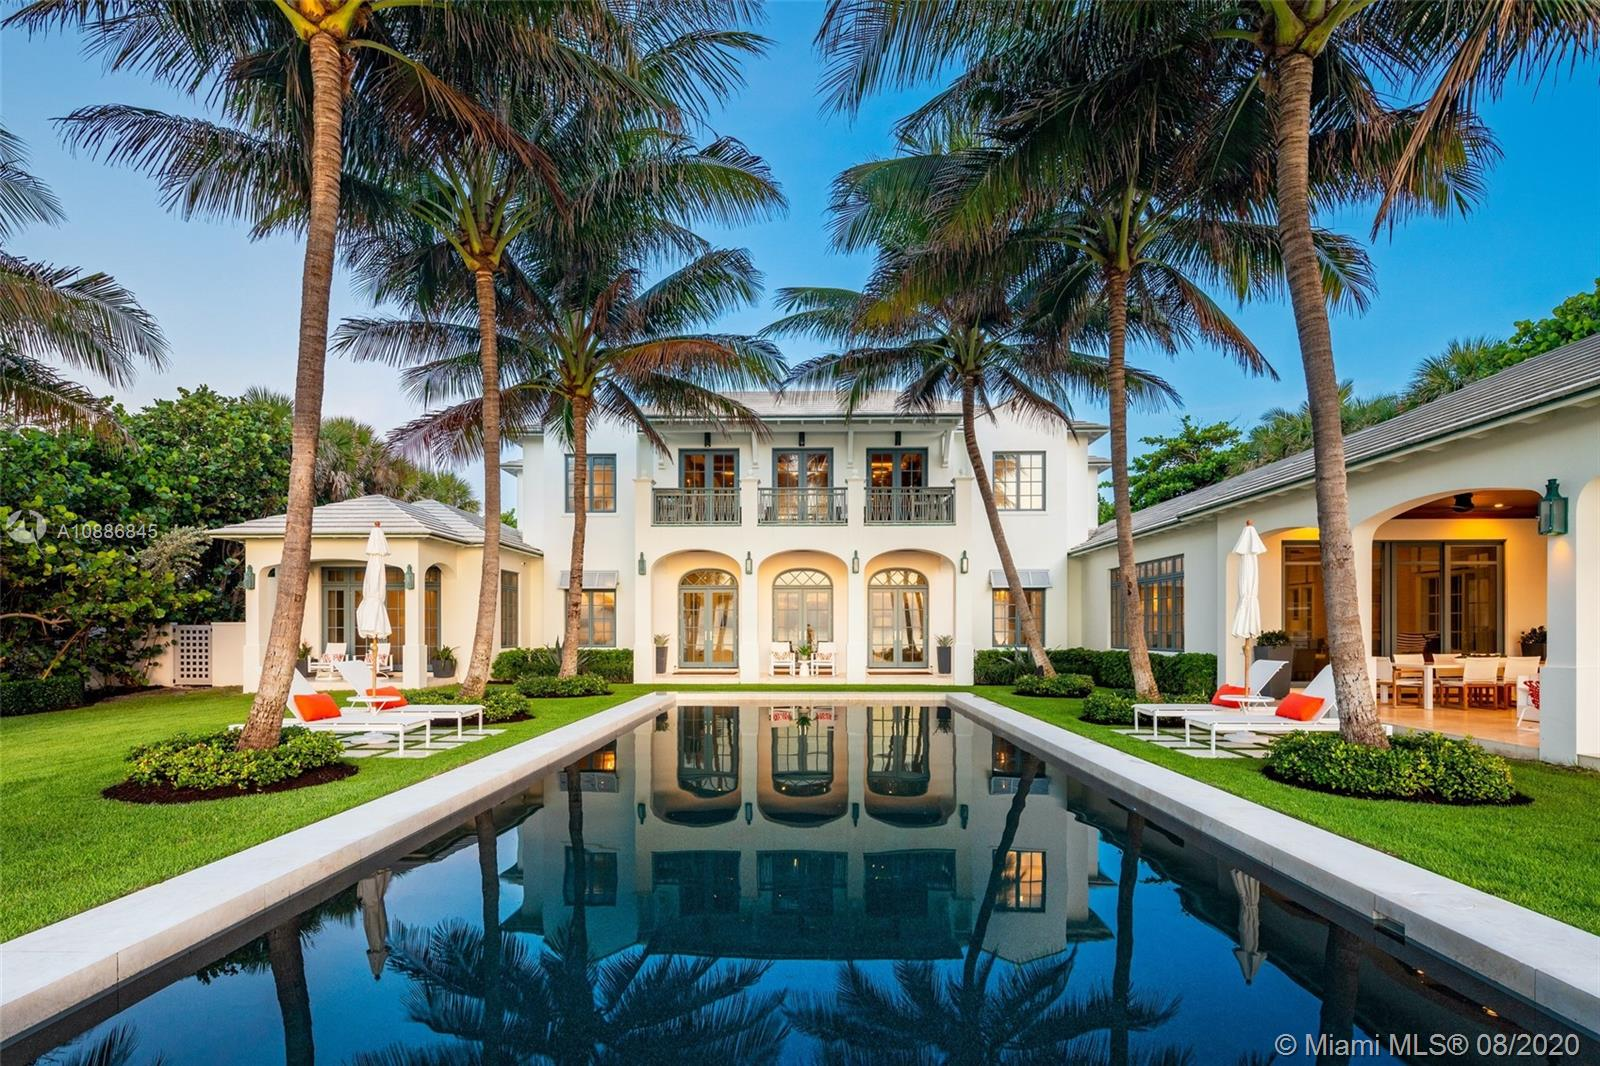 image #1 of property, Palm Beach Shore Acres